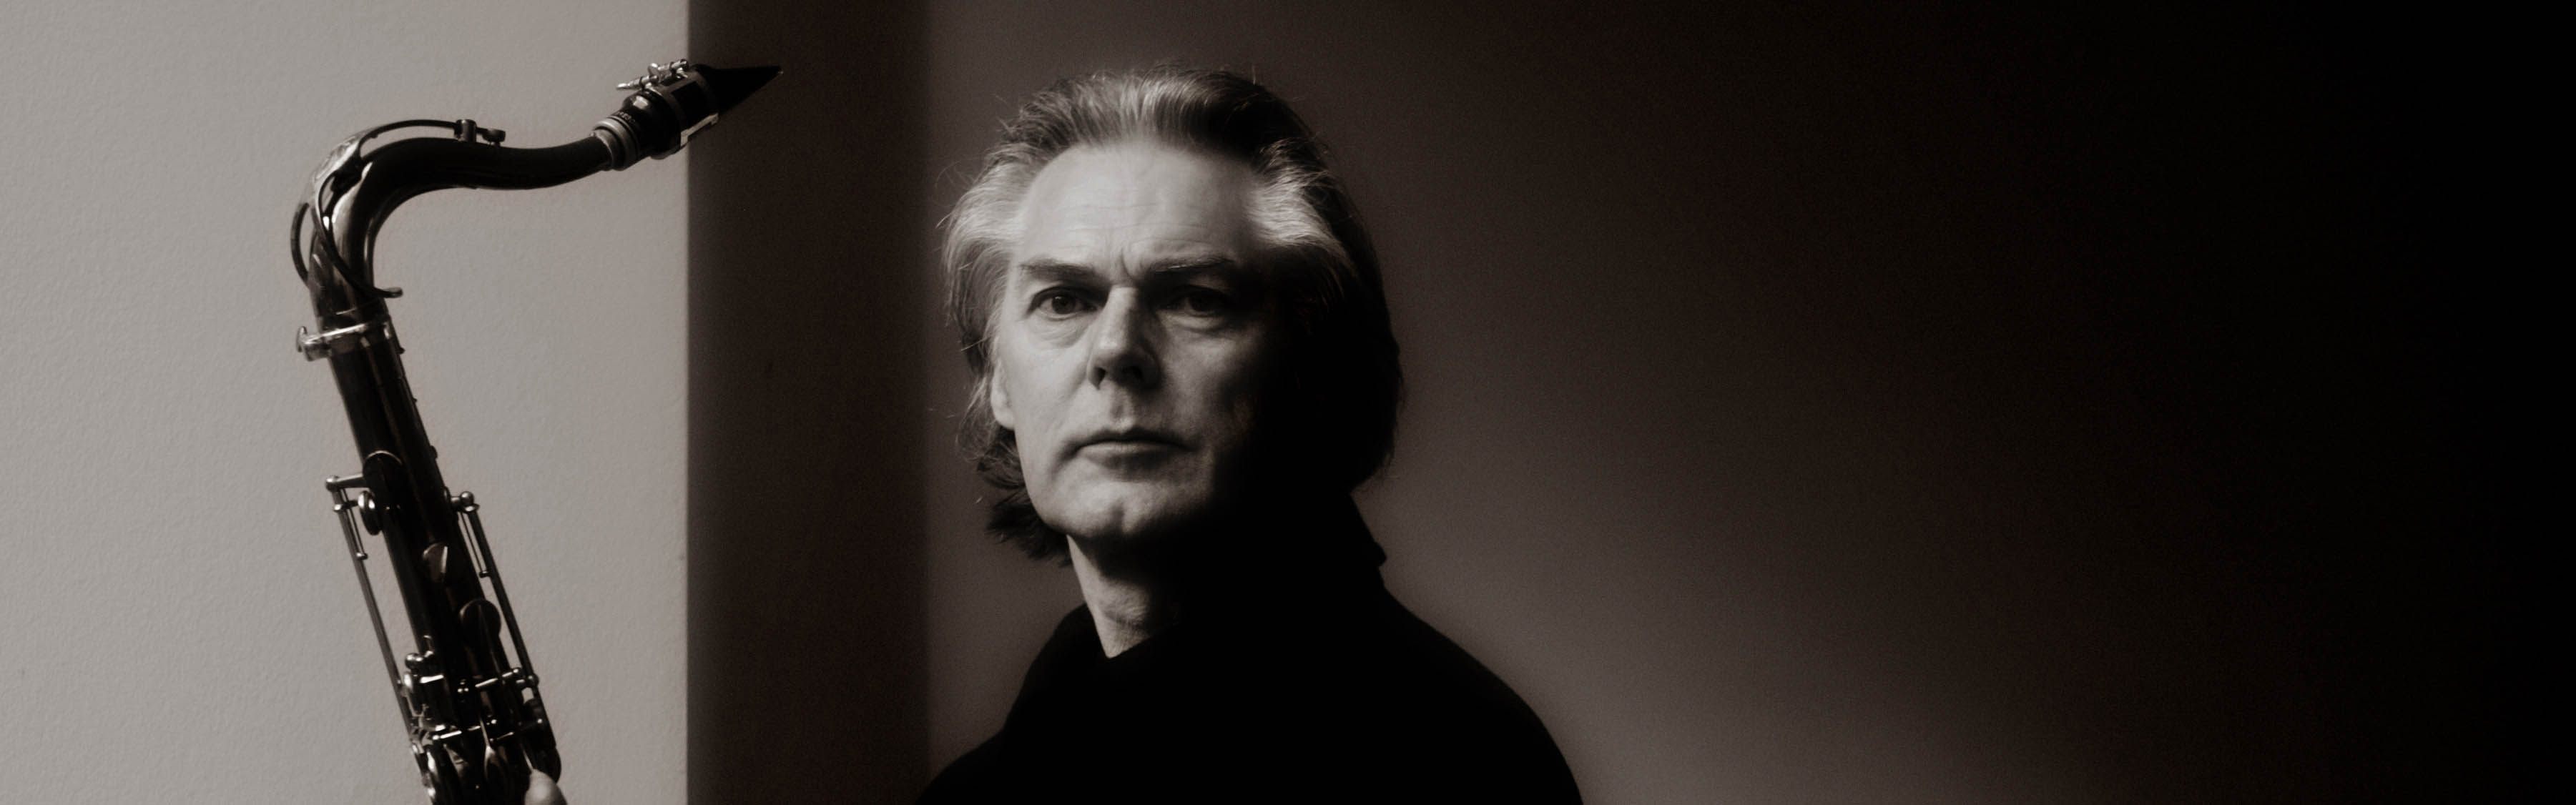 jan garbarek_03_Aagard0